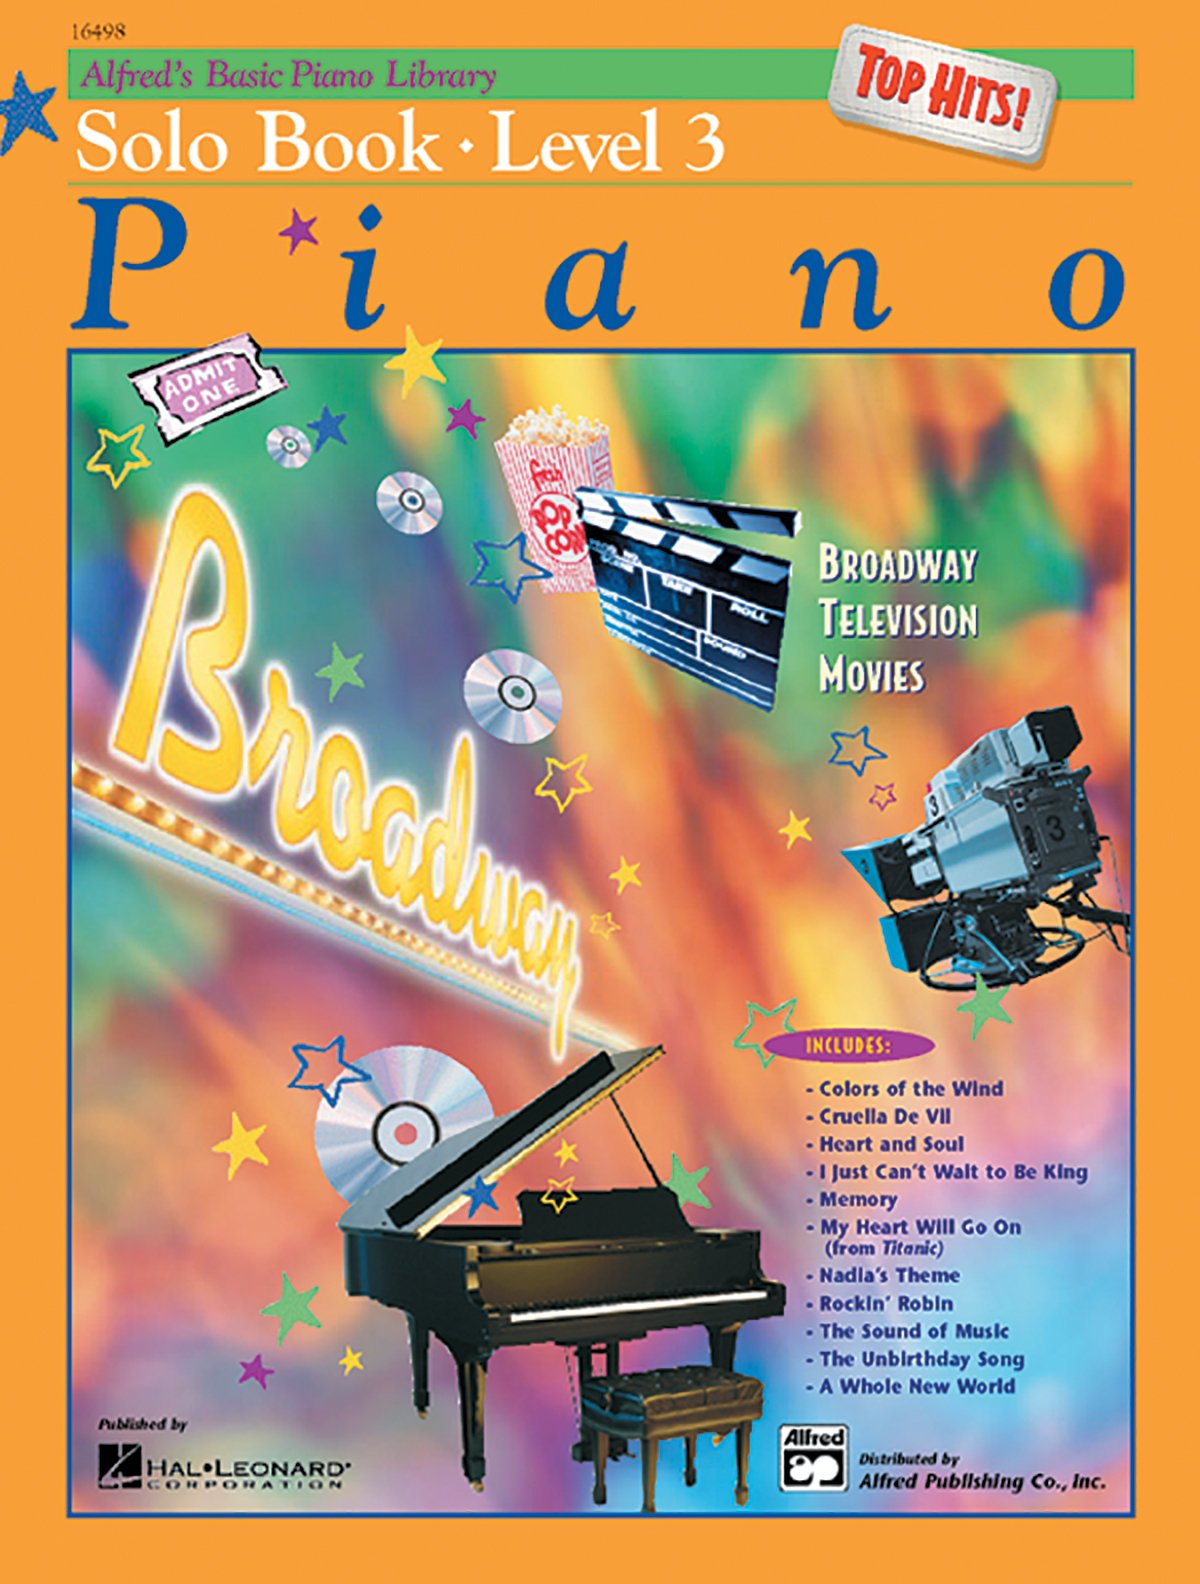 Alfred's Basic Piano Library Top Hits! Solo Book, Bk 3: E  L